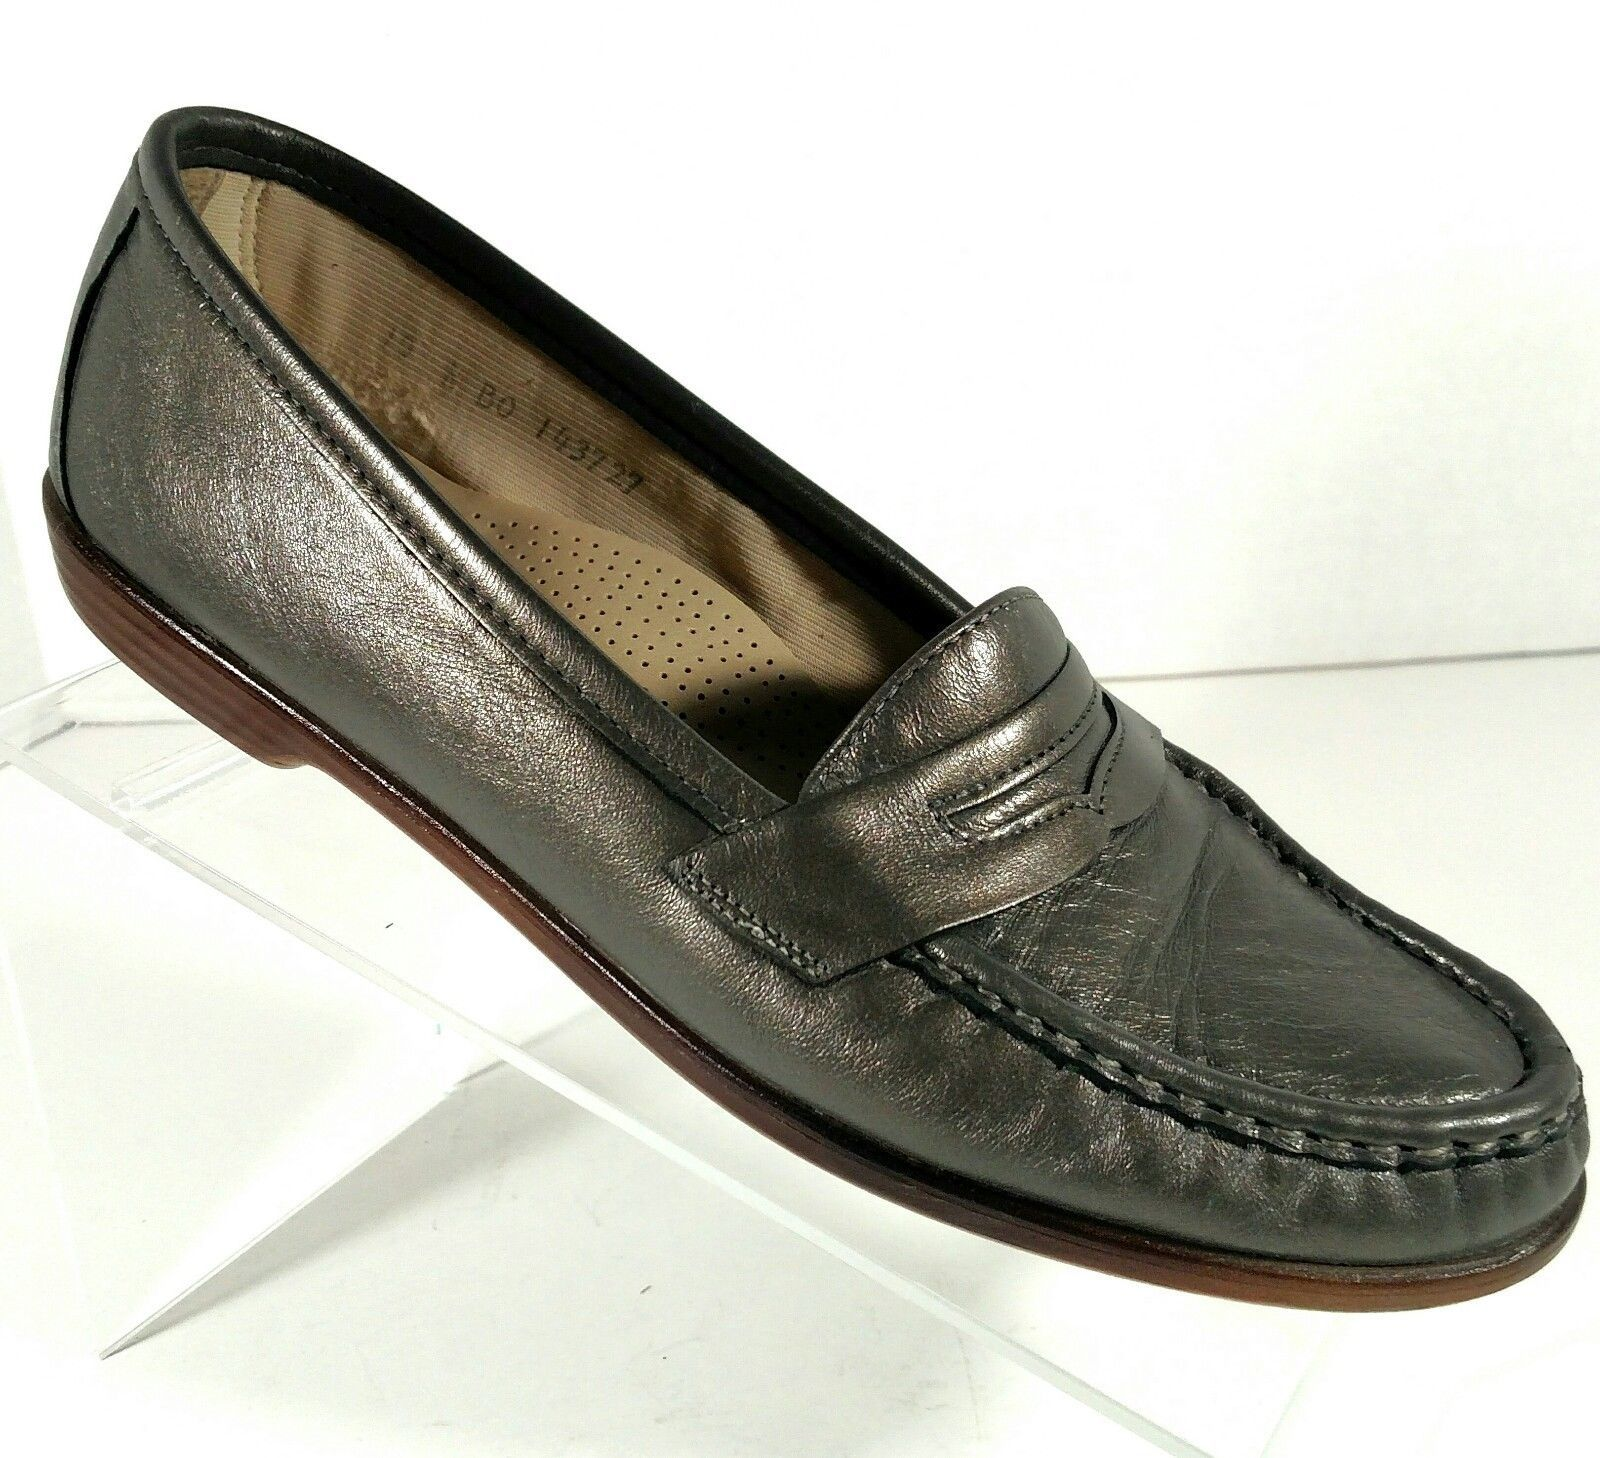 f3c6ed844ef S l1600. S l1600. Previous. SAS Tripad Comfort Shoes Penny Loafer Slip On  Grey Leather Women s Size 10